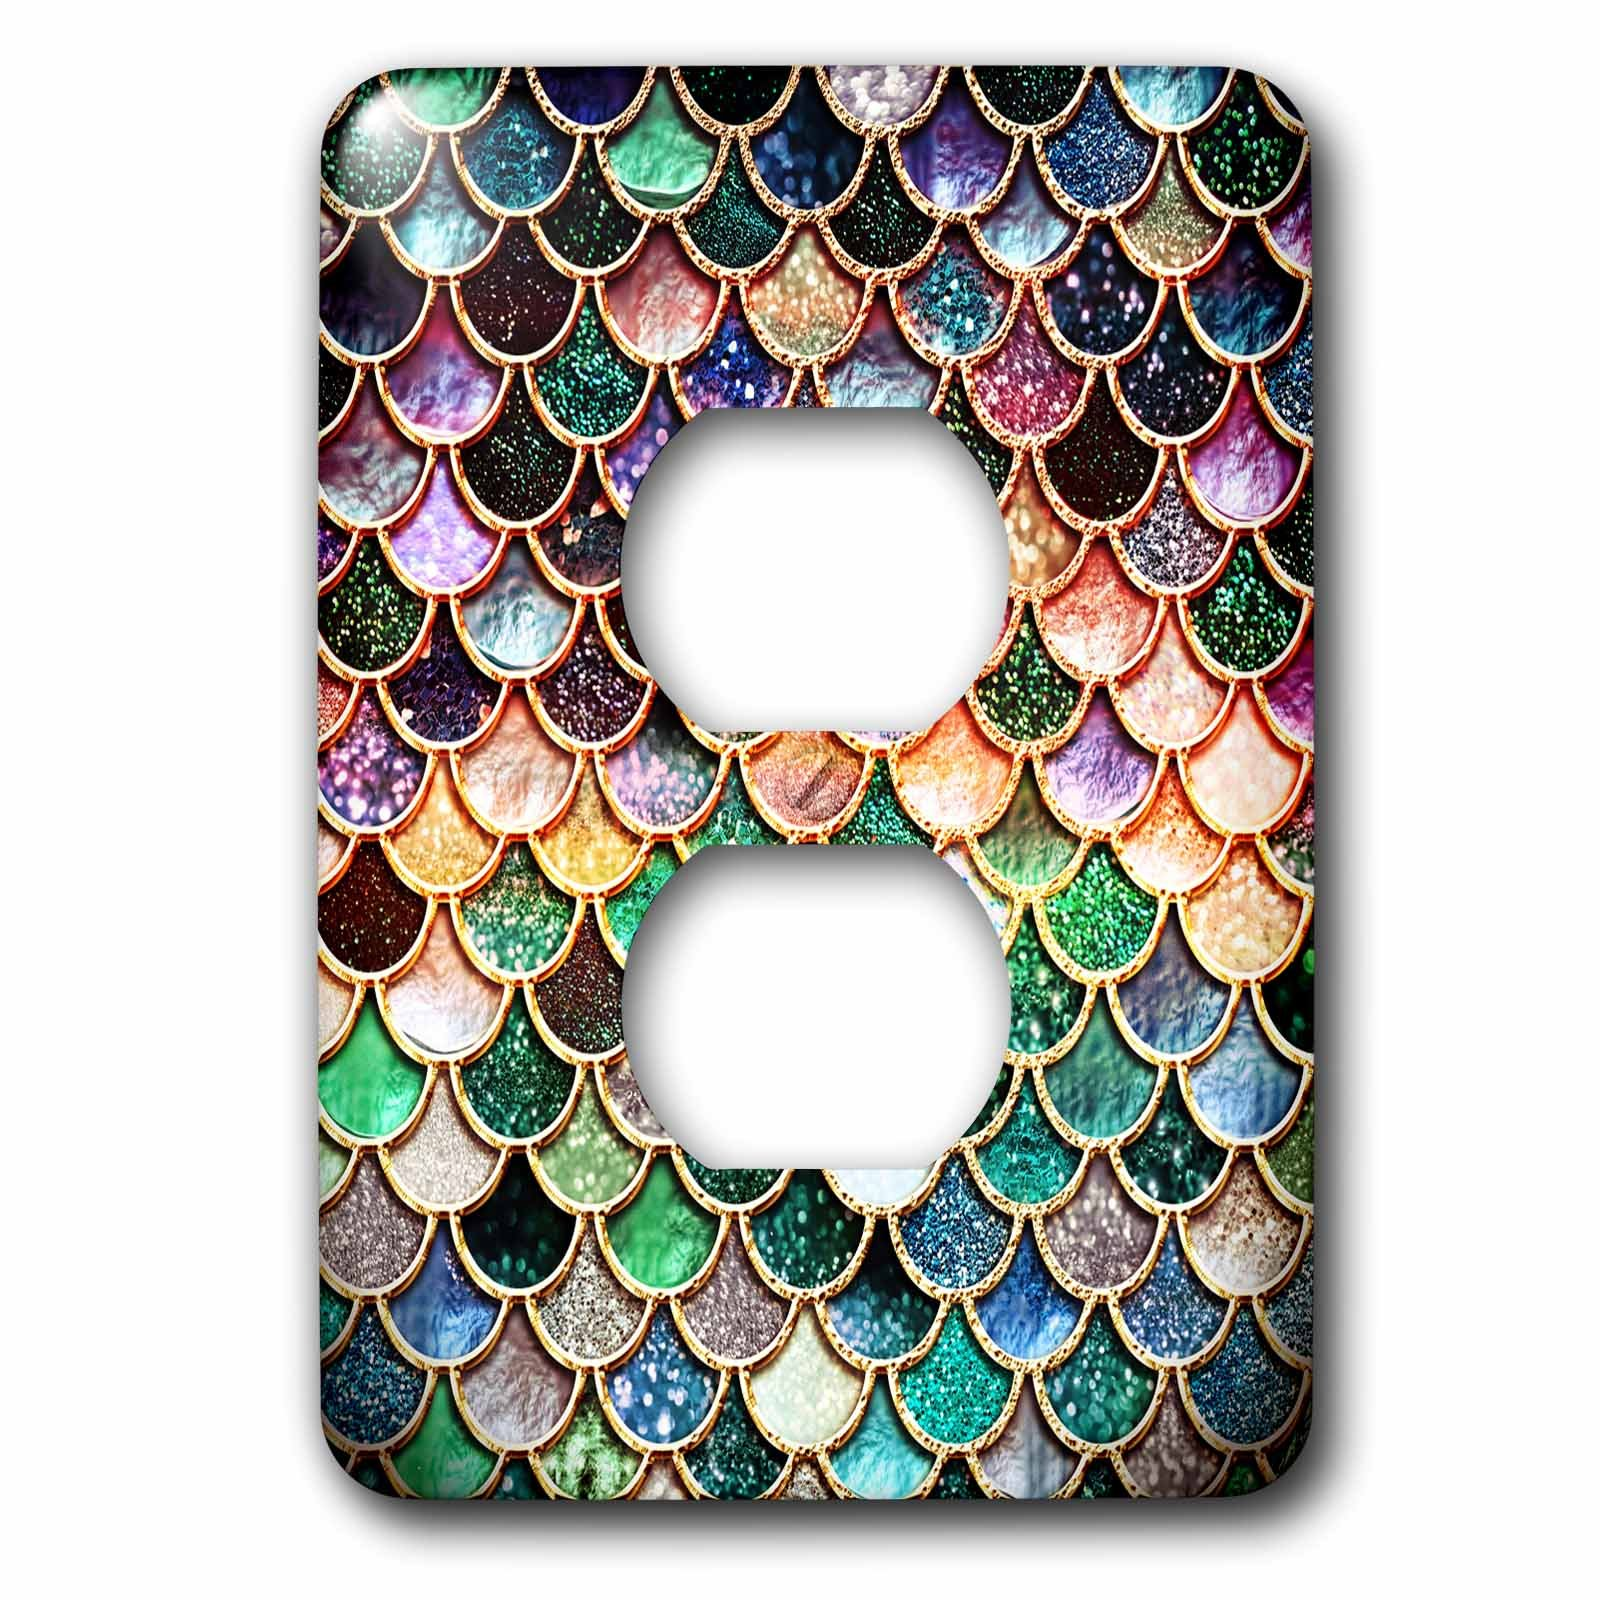 3dRose Uta Naumann Faux Glitter Pattern - Multicolor Girly Trend Pink Luxury Elegant Mermaid Scales Glitter - Light Switch Covers - 2 plug outlet cover (lsp_272865_6) by 3dRose (Image #1)